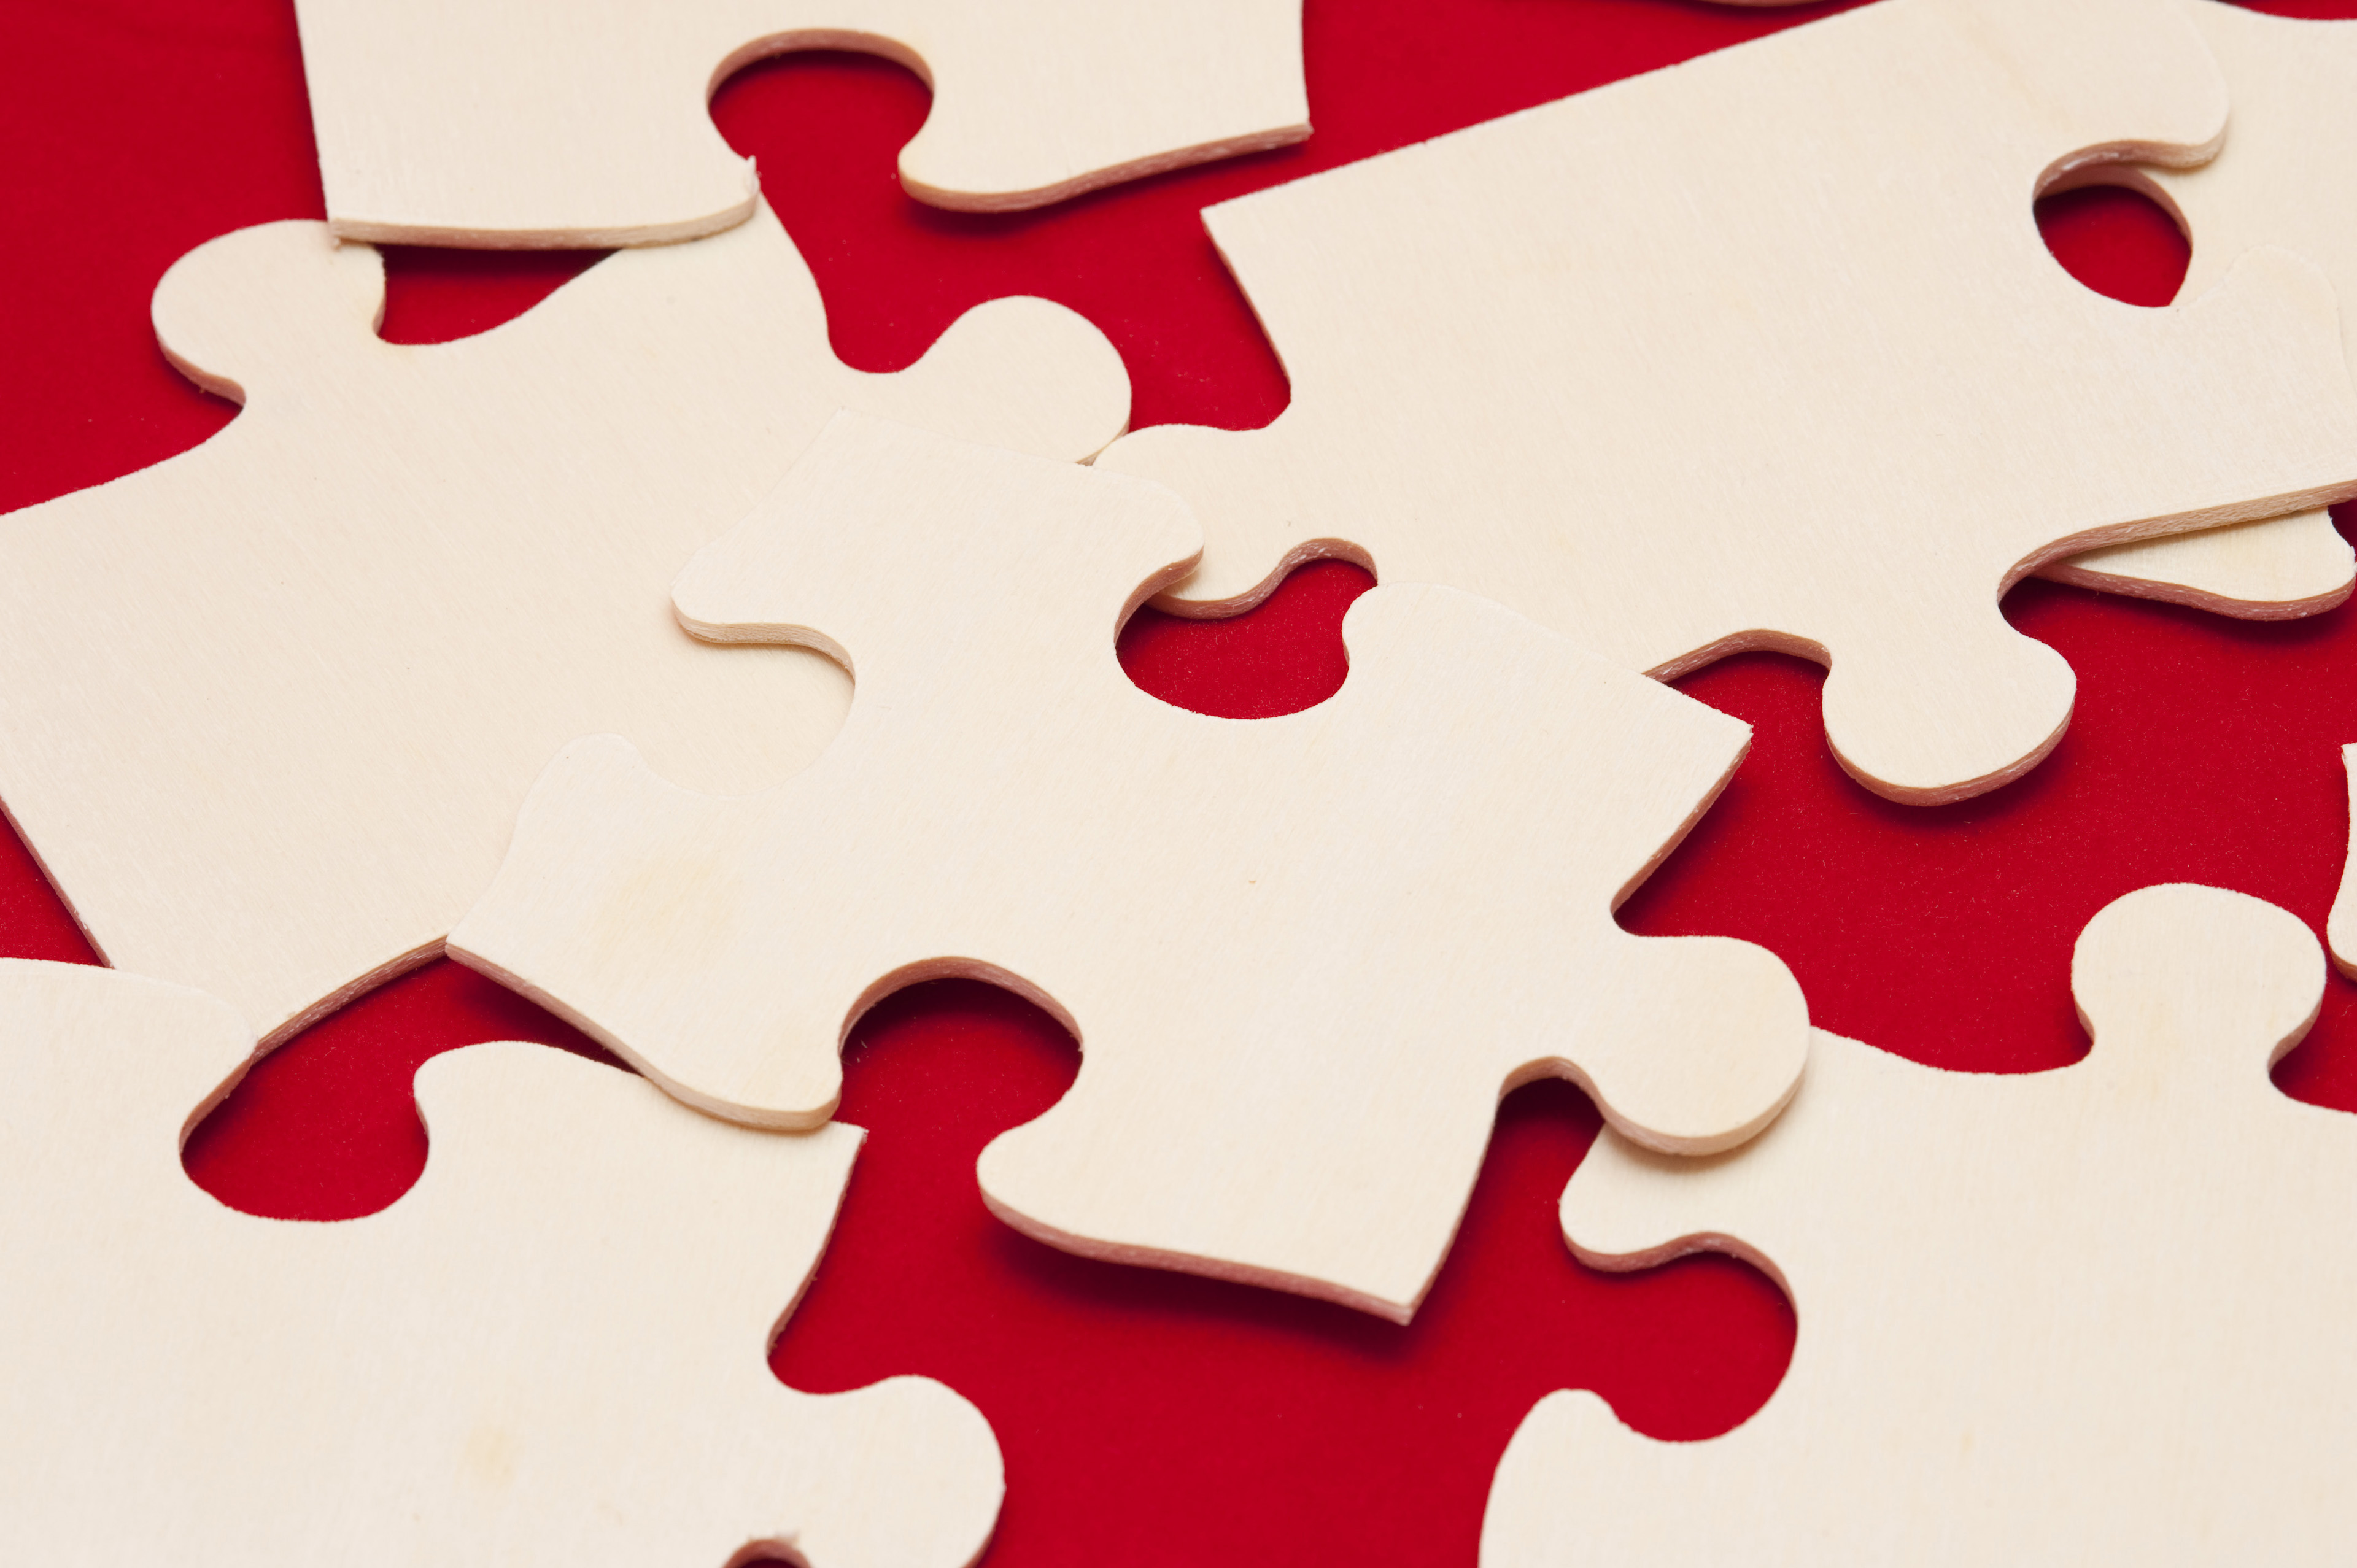 Close up Shot of Conceptual White Jigsaw Puzzle Pieces on Red Background